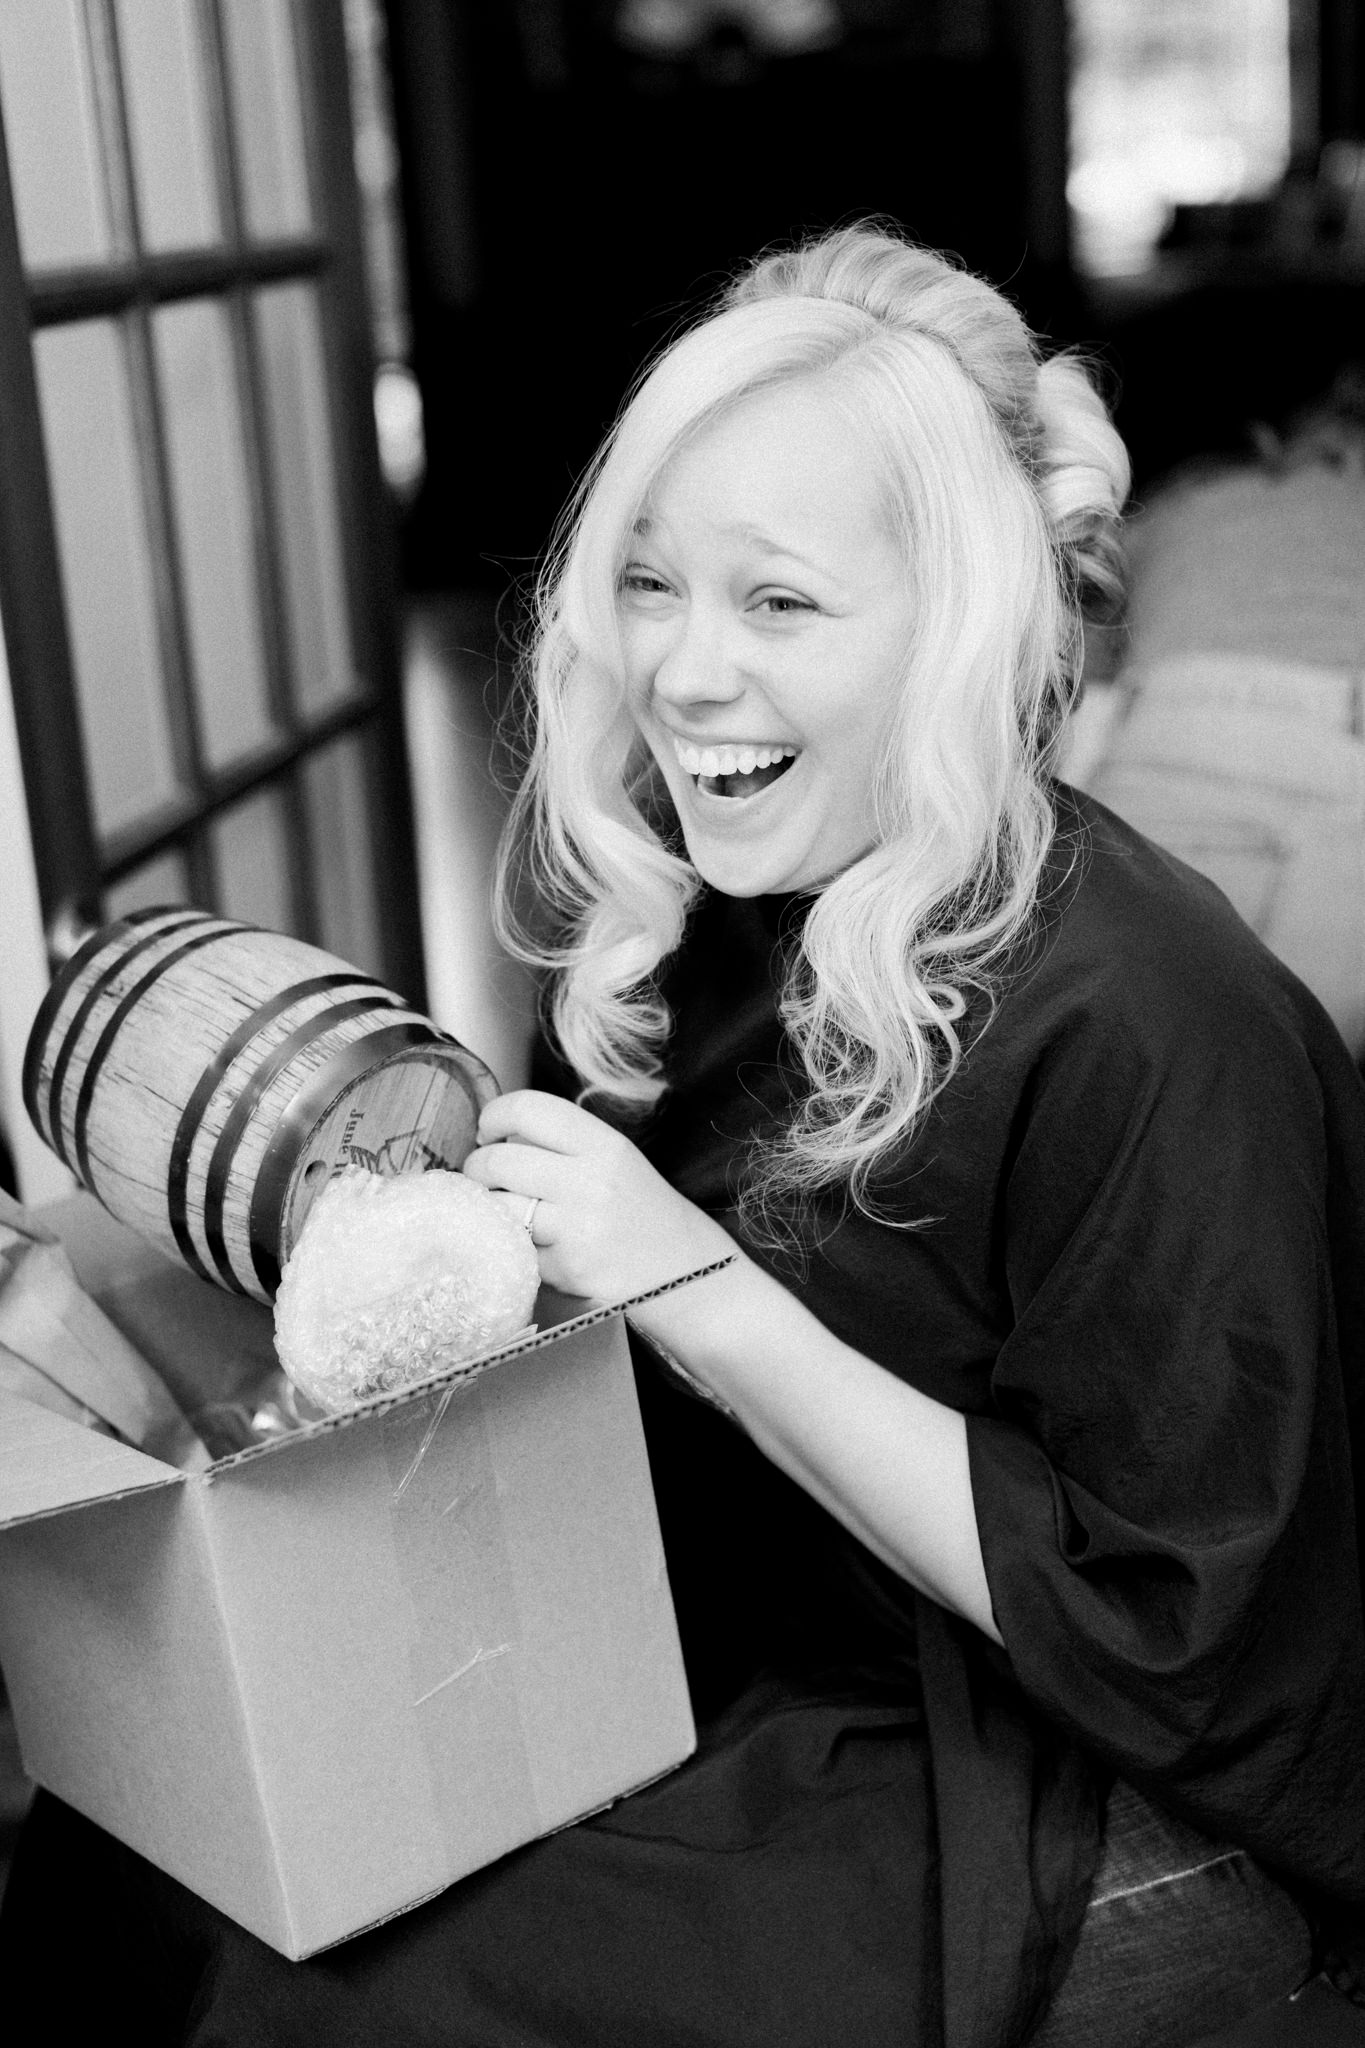 Bride laughing as she opens up her small bourbon barrel gift from the groom on her wedding day.